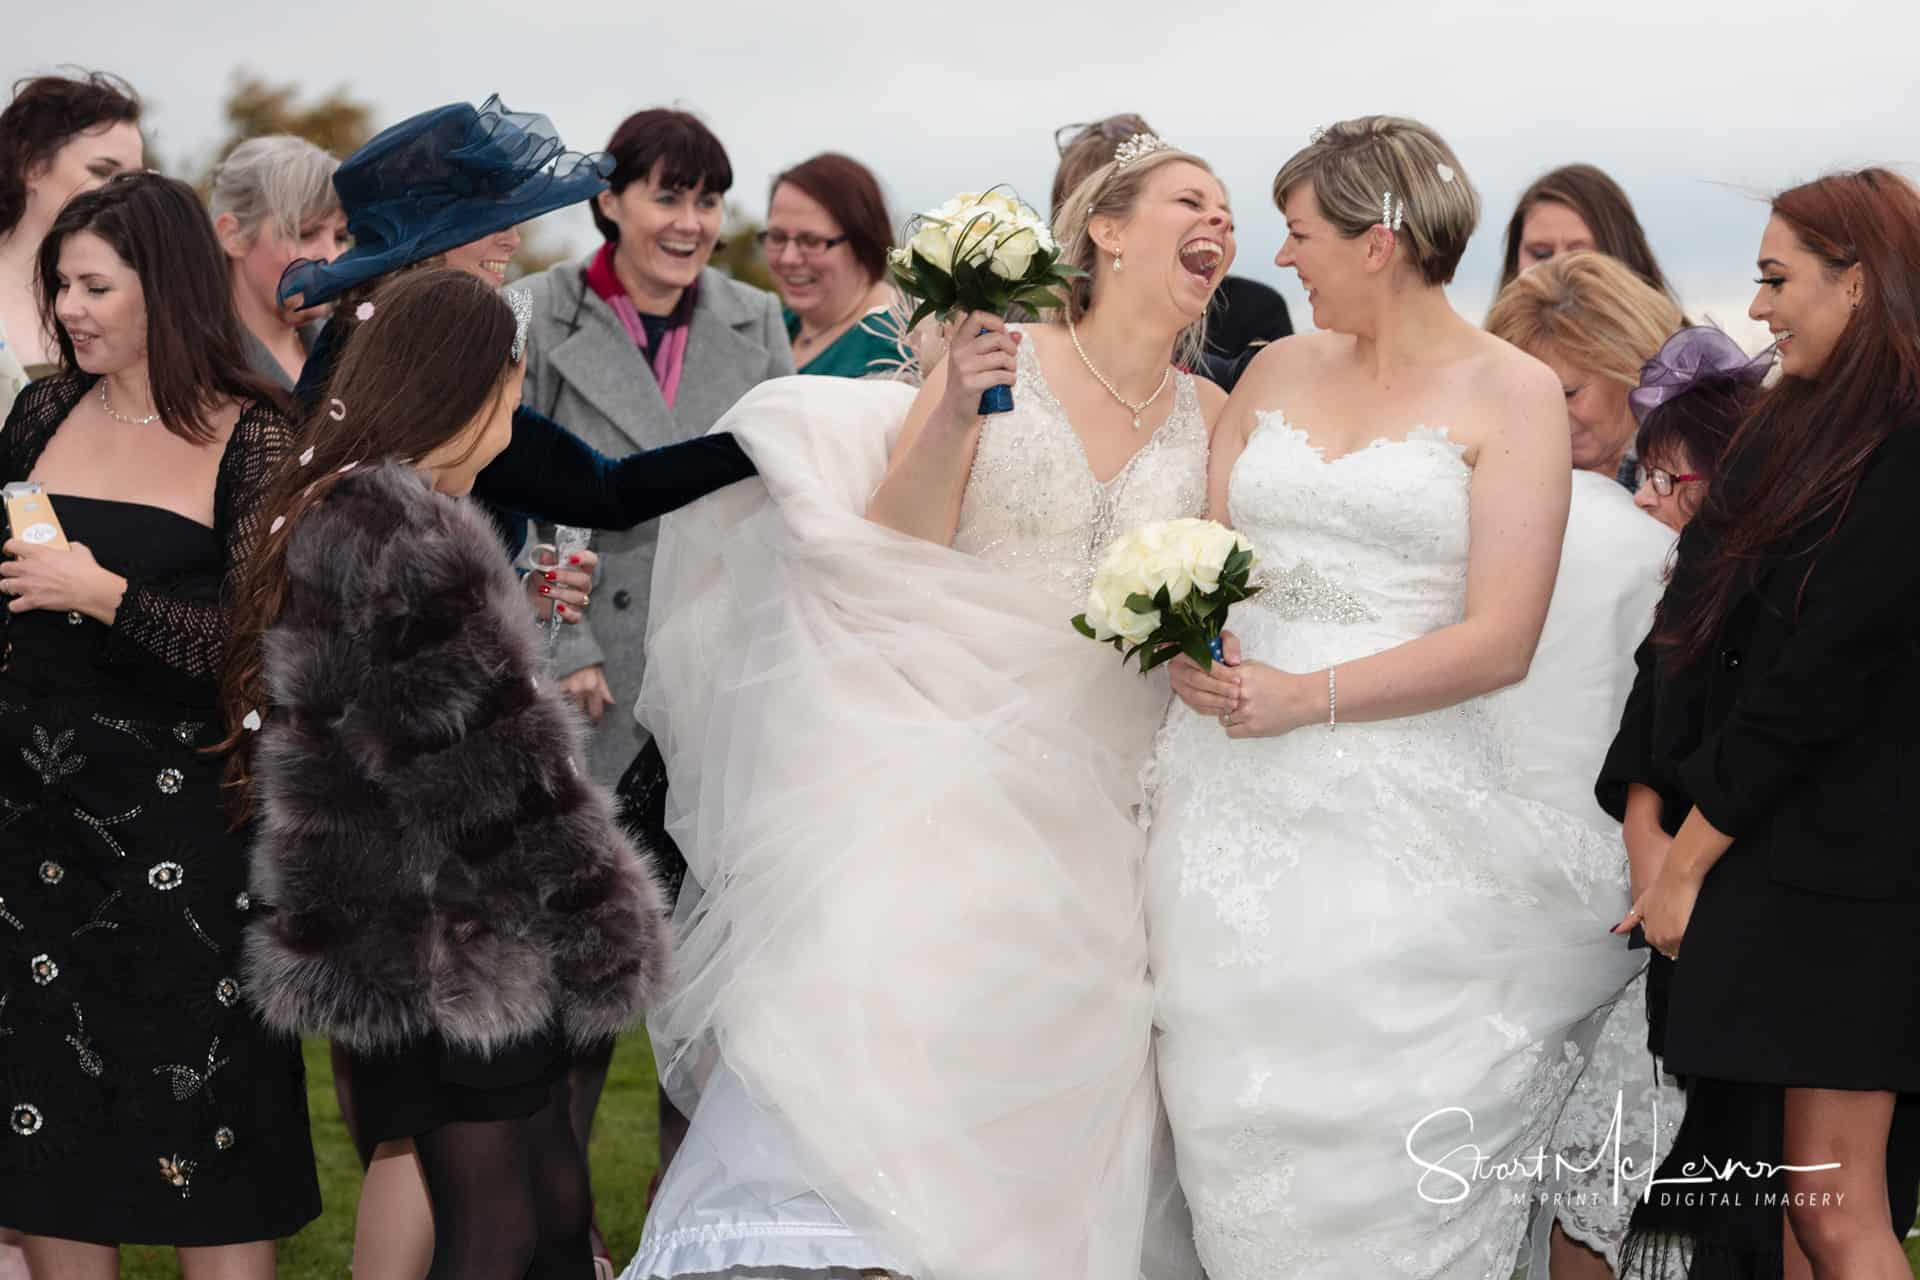 Forest Hills Hotel Wedding Photography by Stuart McLernon | M-PRINT Digital Imagery